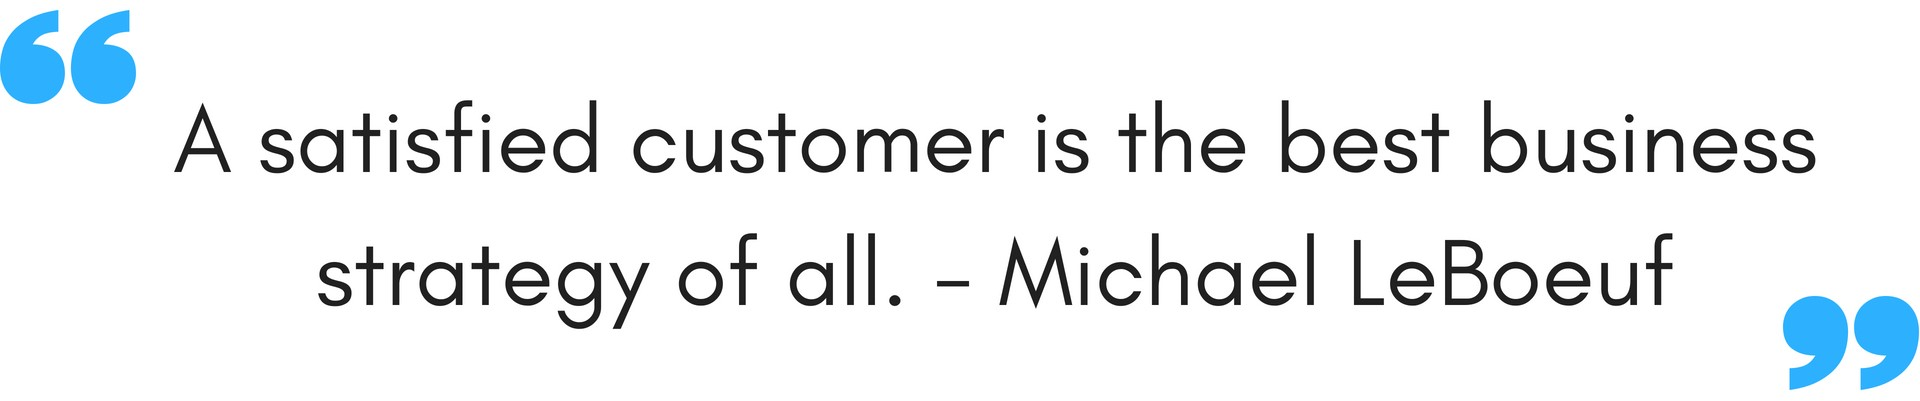 A-satisfied-customer-is-the-best-business-strategy-of-all.-Michael-LeBoeuf